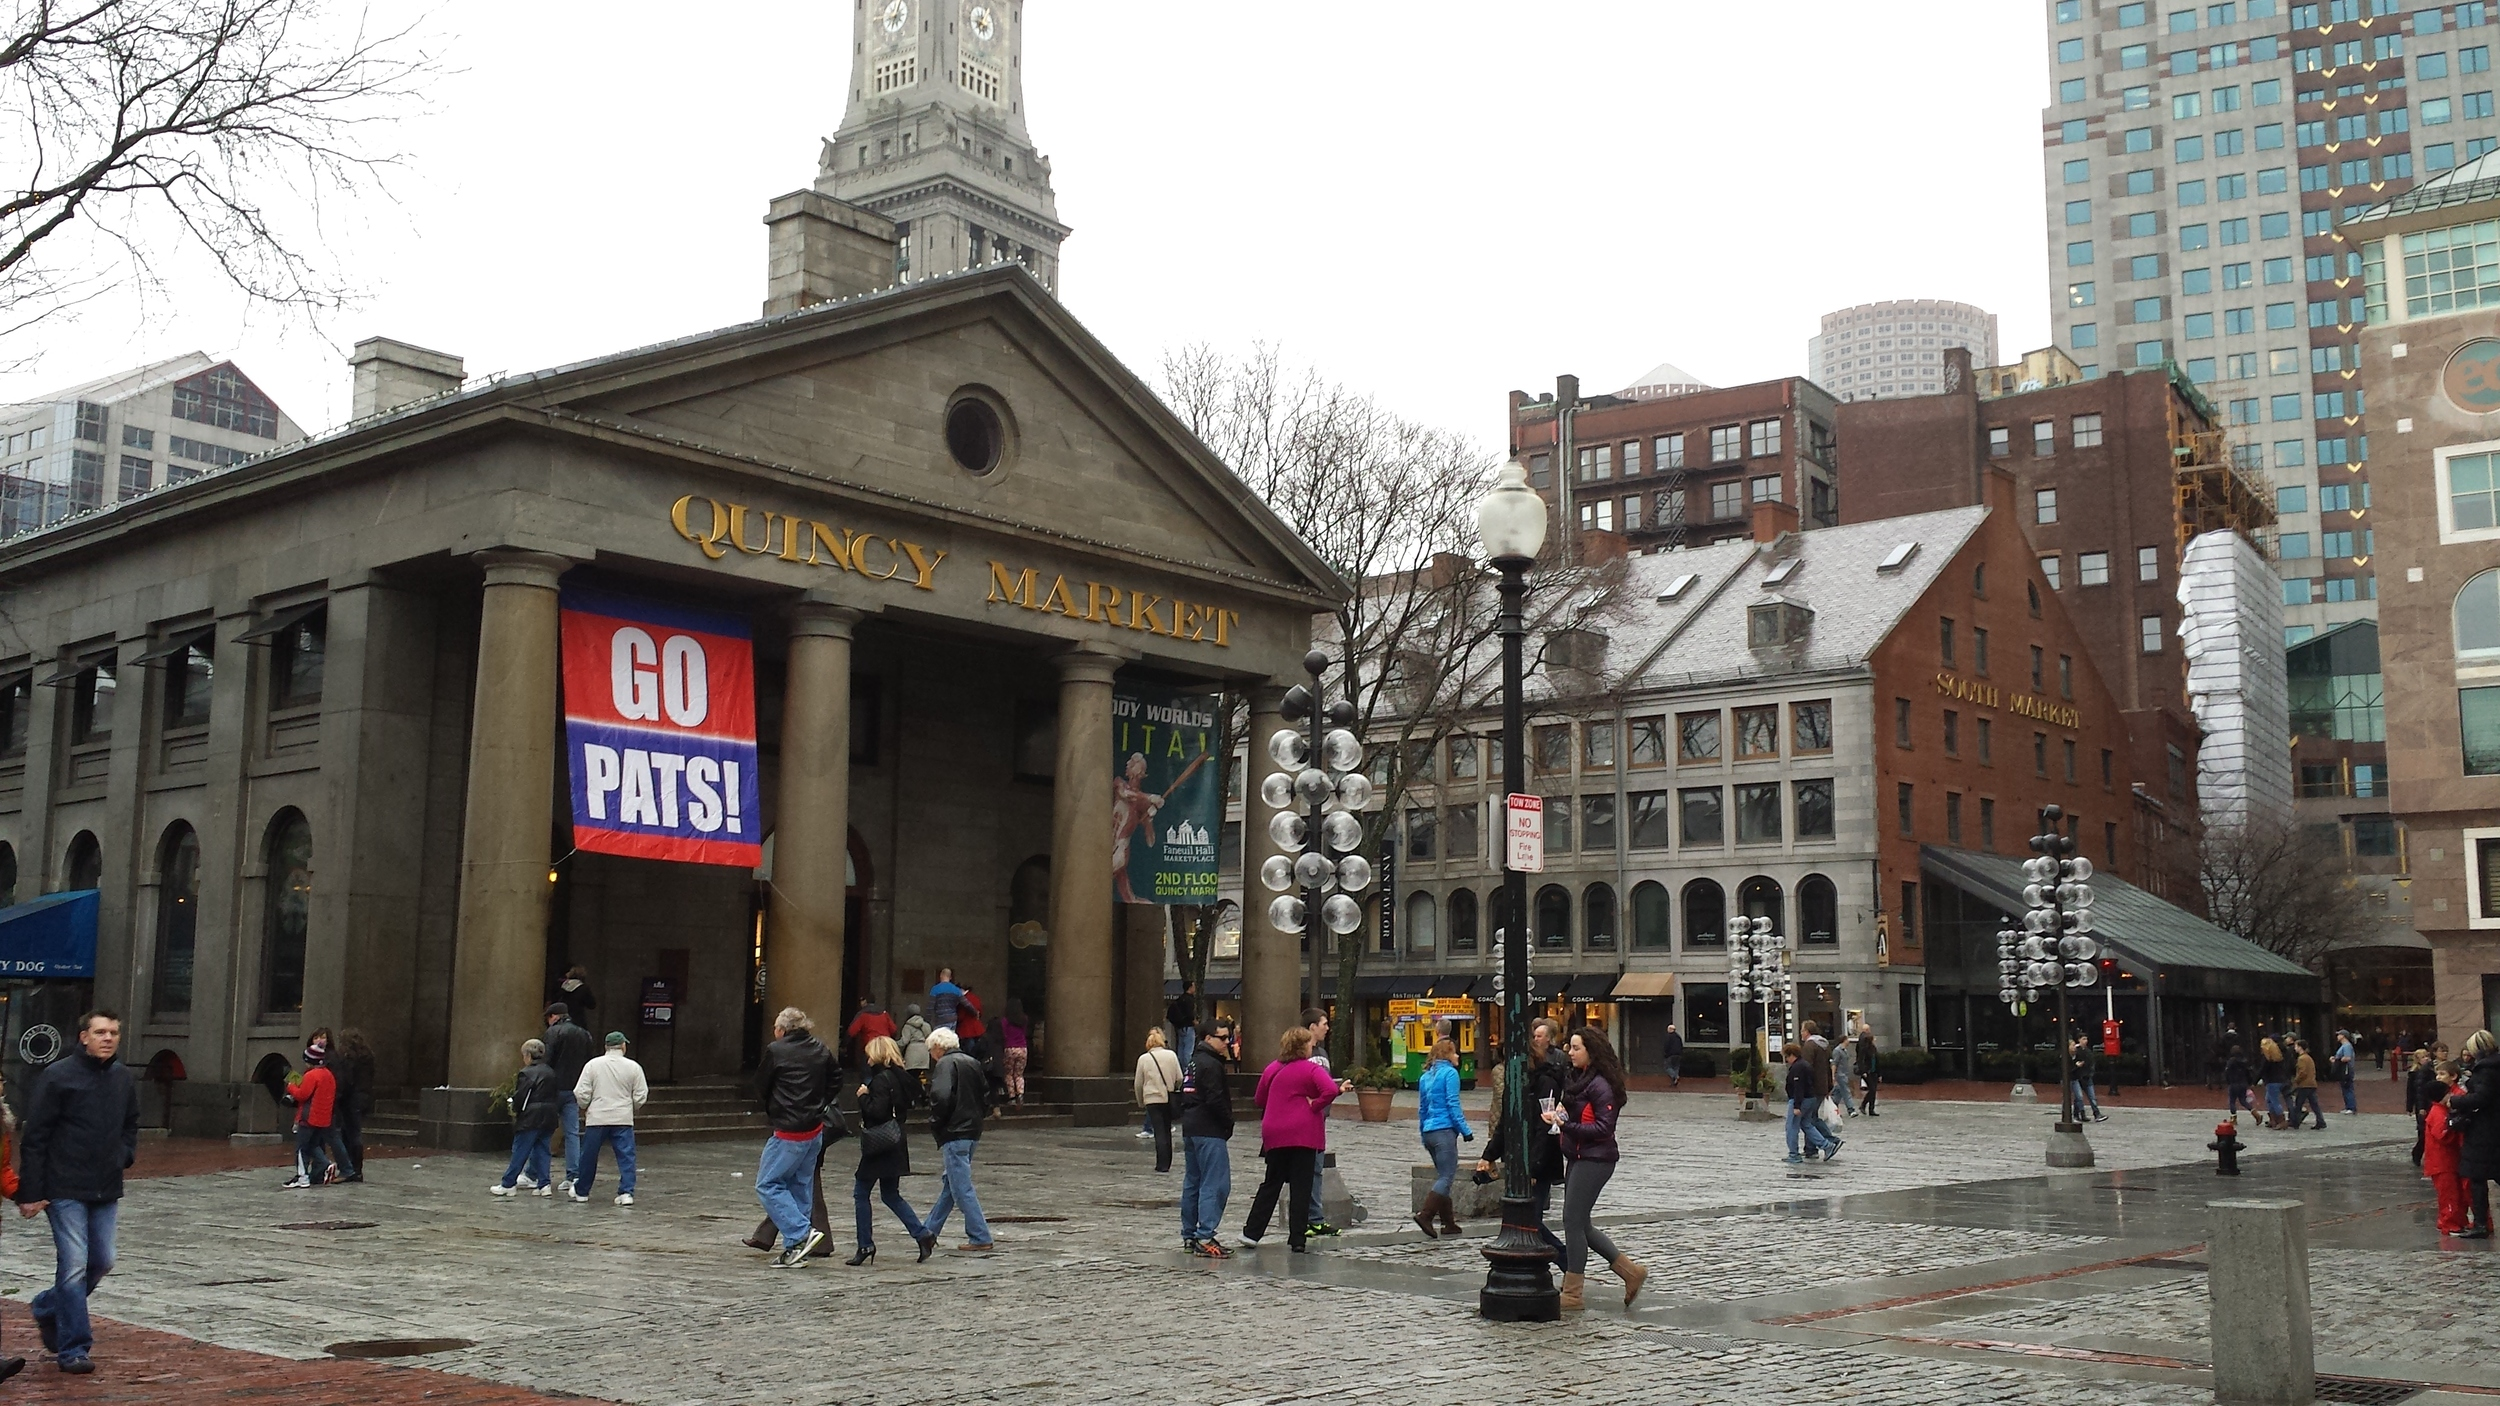 Faneuil Hall Marketplace.